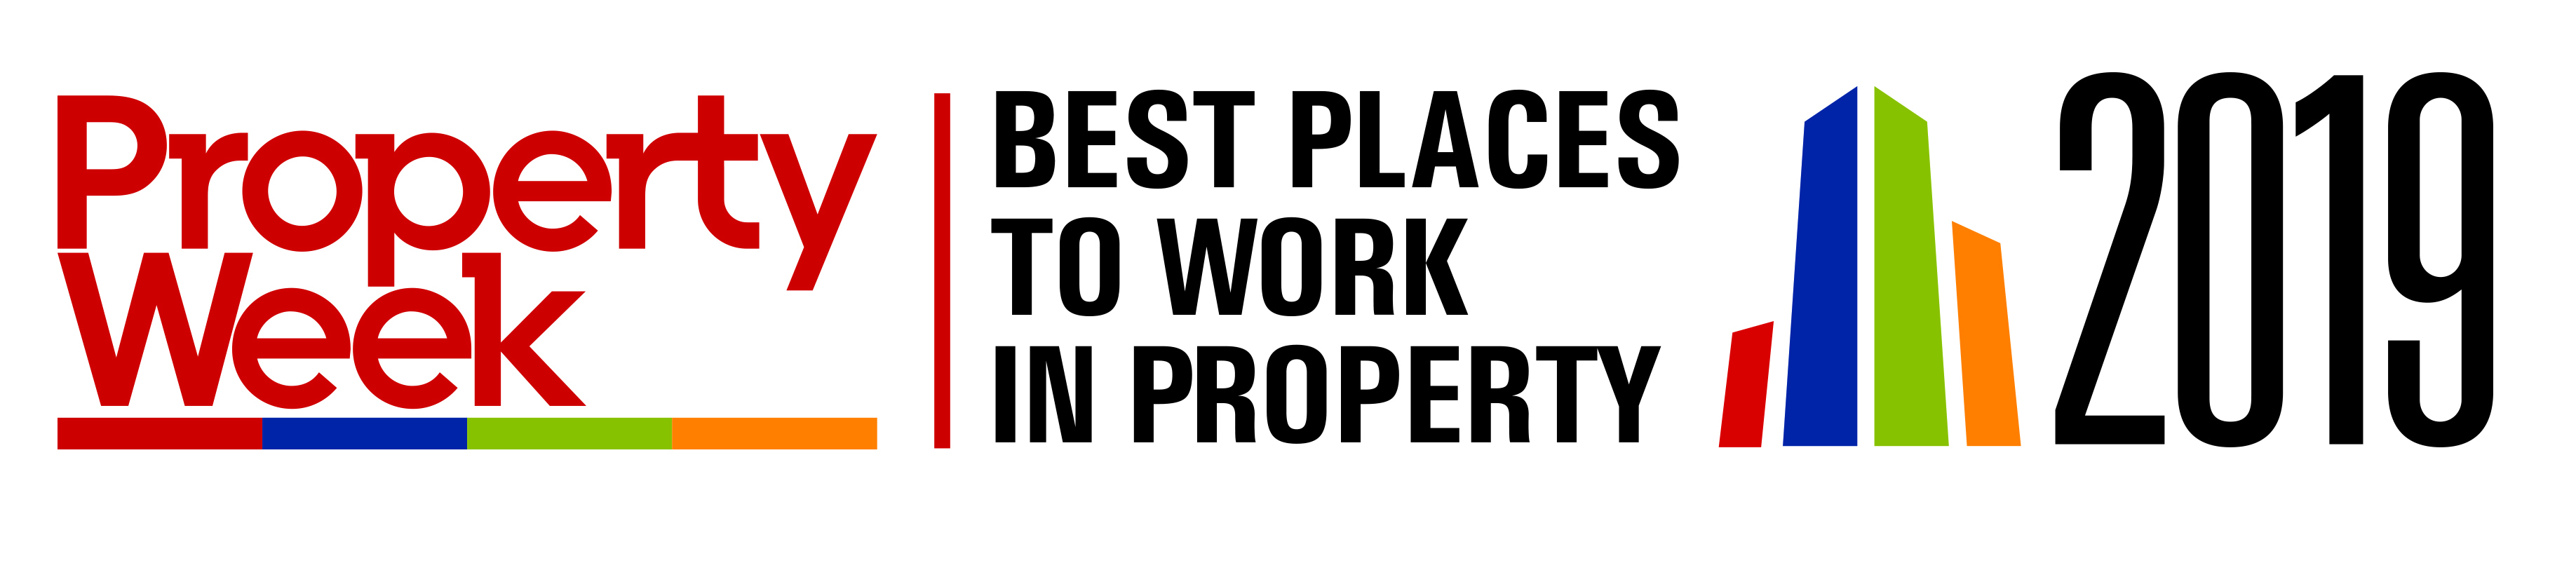 Carterwood's second year of success in Property Week's Best Places to Work in Property awards